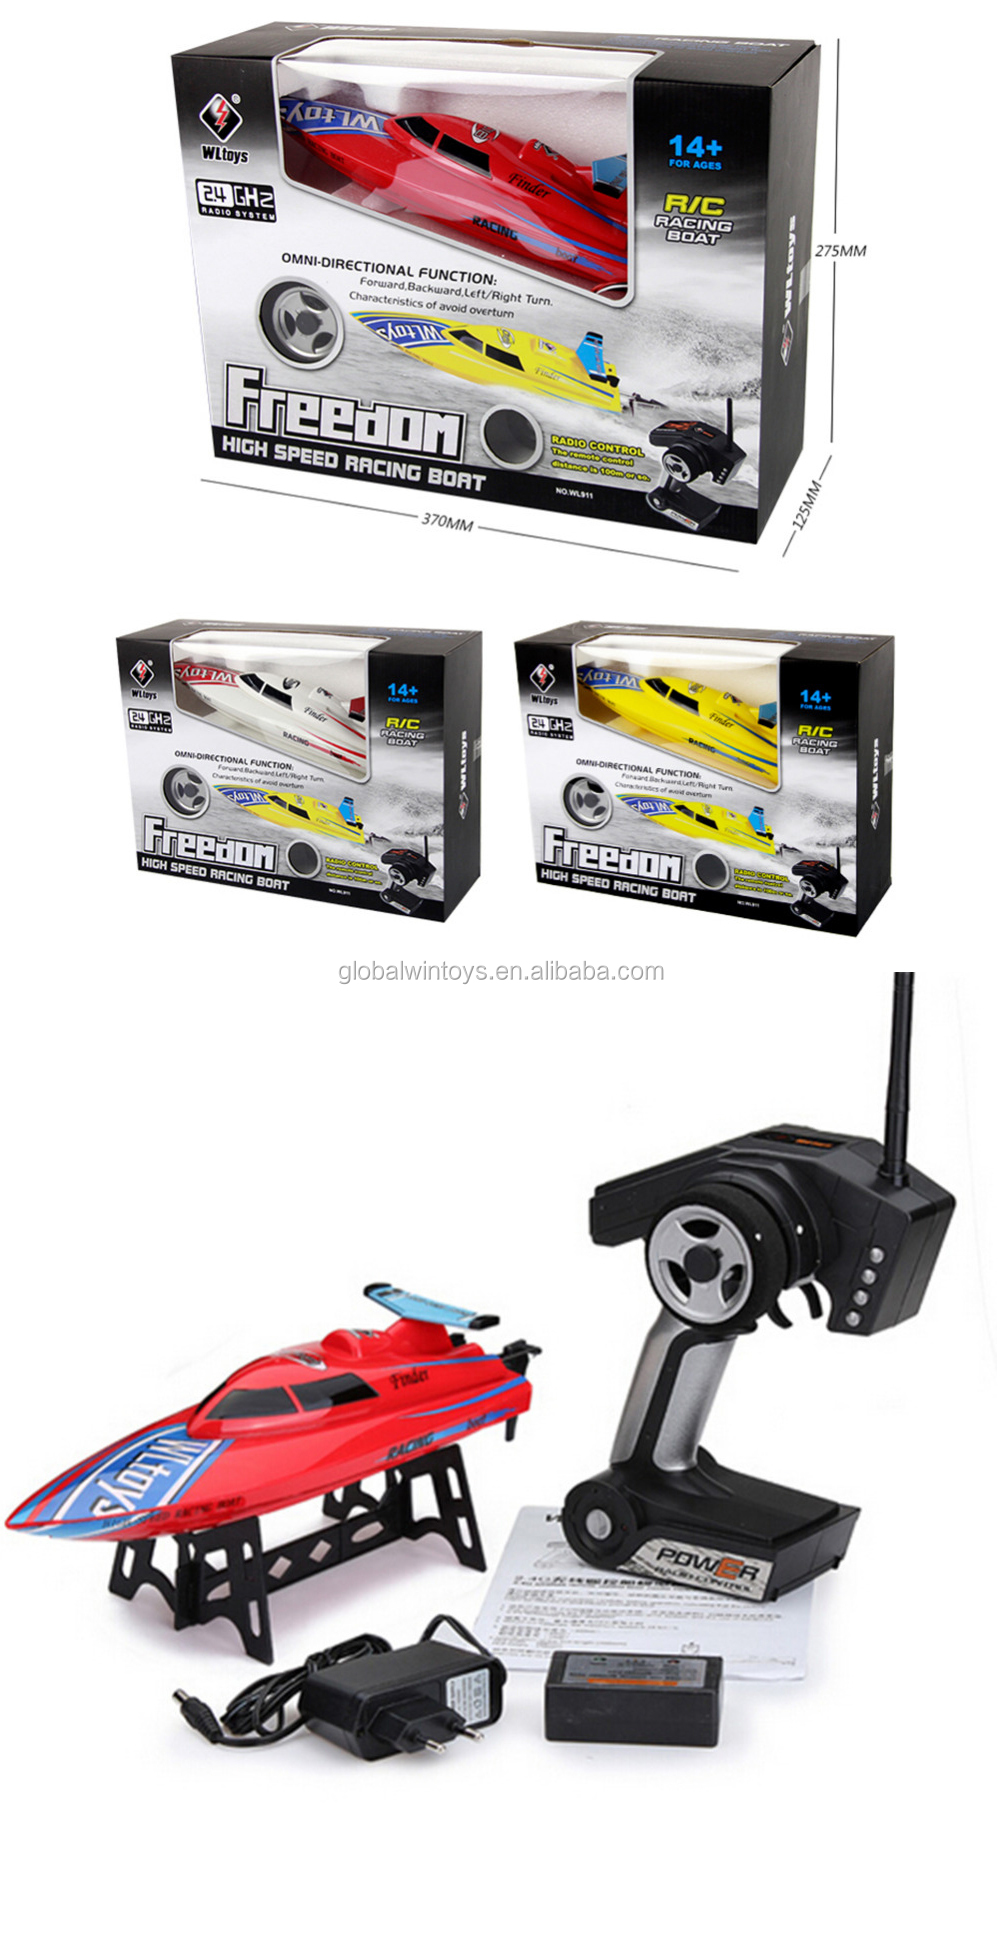 WLtoys911 rc boat 3 colors to choose 24km/h high speed boat for kids toy jet boat  avoid overturn .jpg